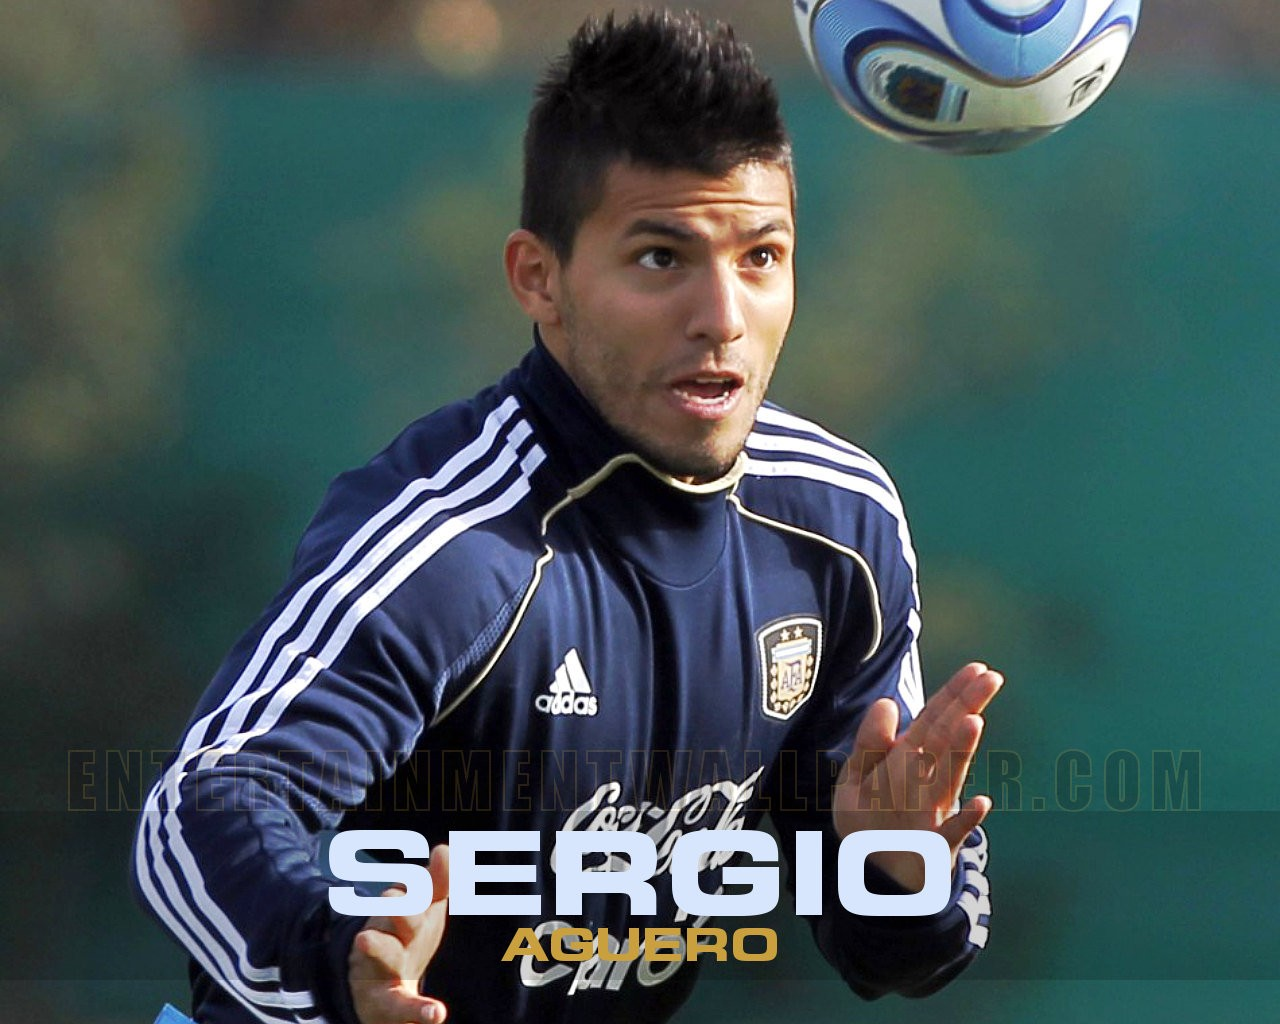 Sergio Aguero Wallpapers: All Football Players: Sergio Aguero 2012 New Wallpapers